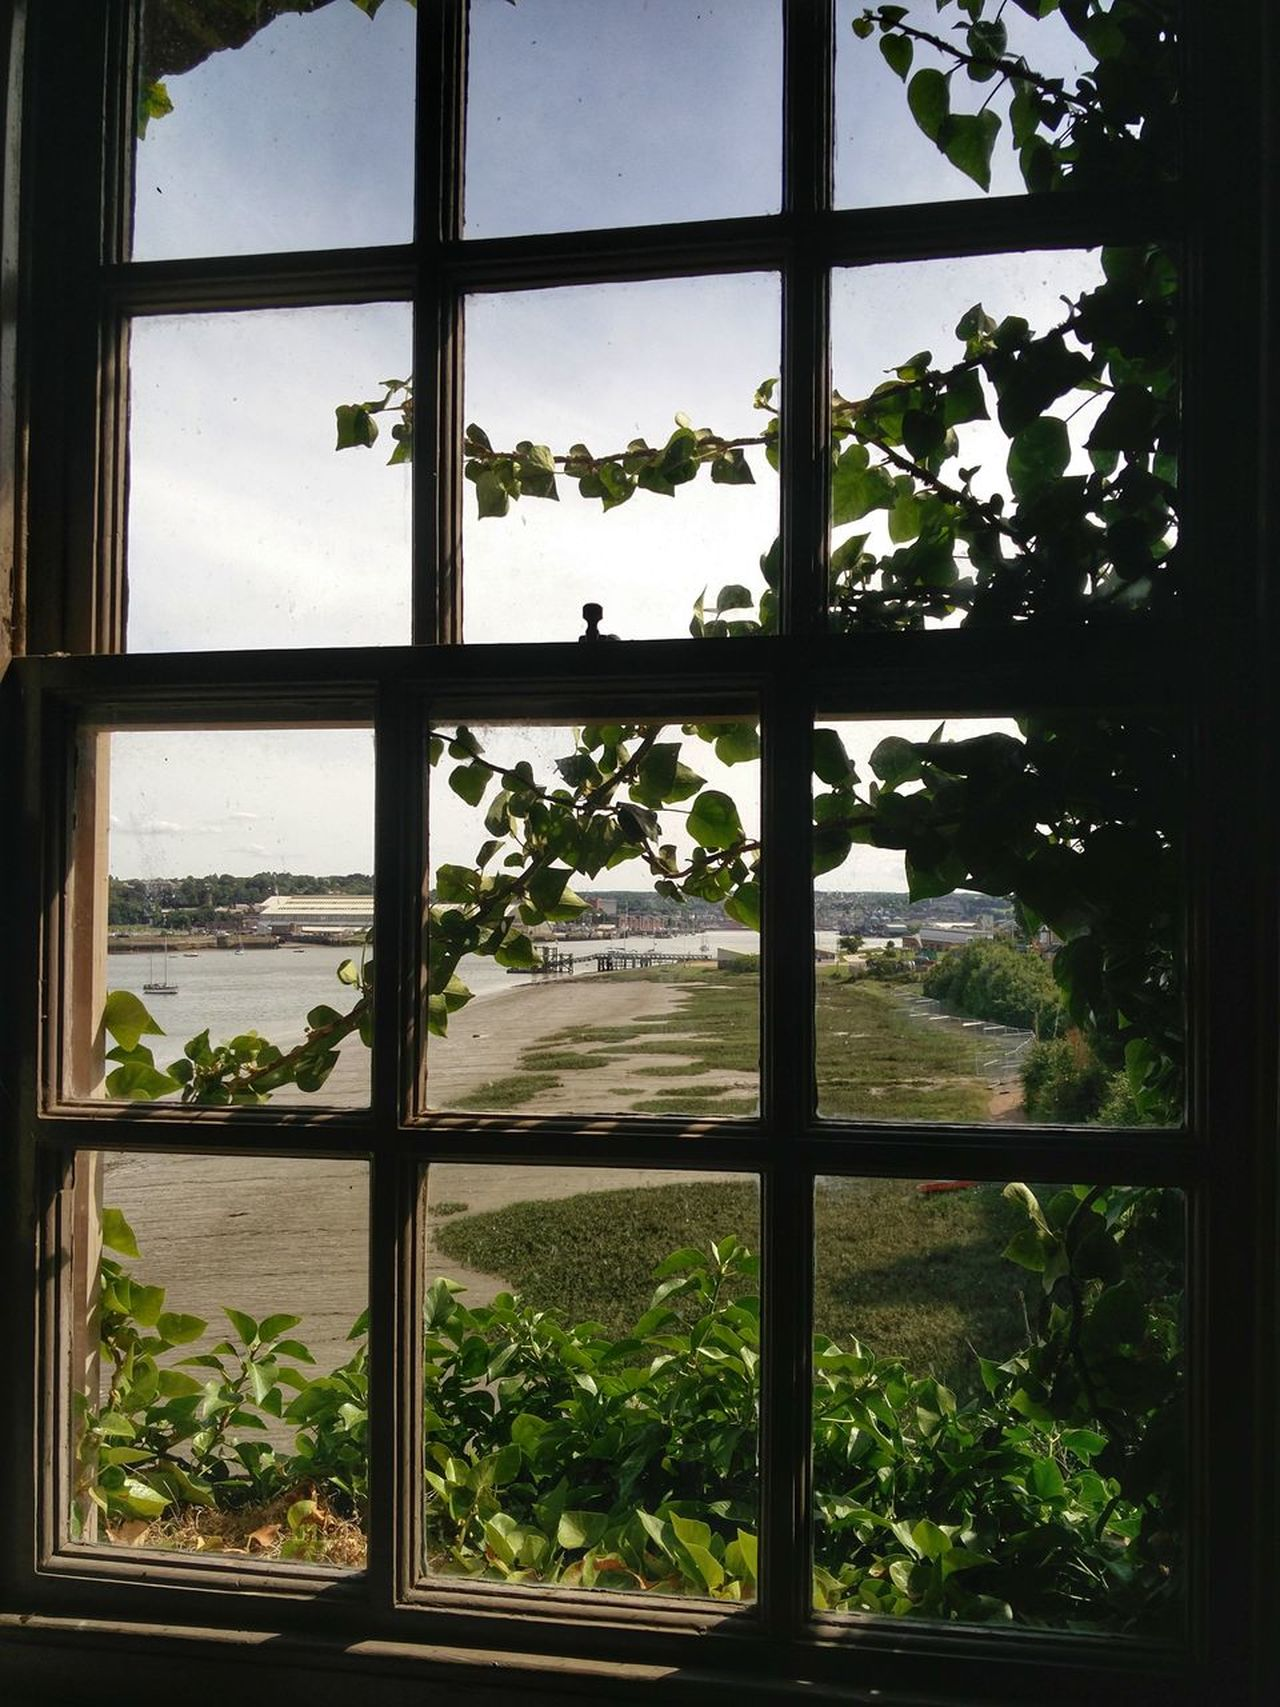 Window Wooden Window Window View Medway River Medway Kent Medway Upnor Castle Kent Nice View Just Around You Nice View 🌍